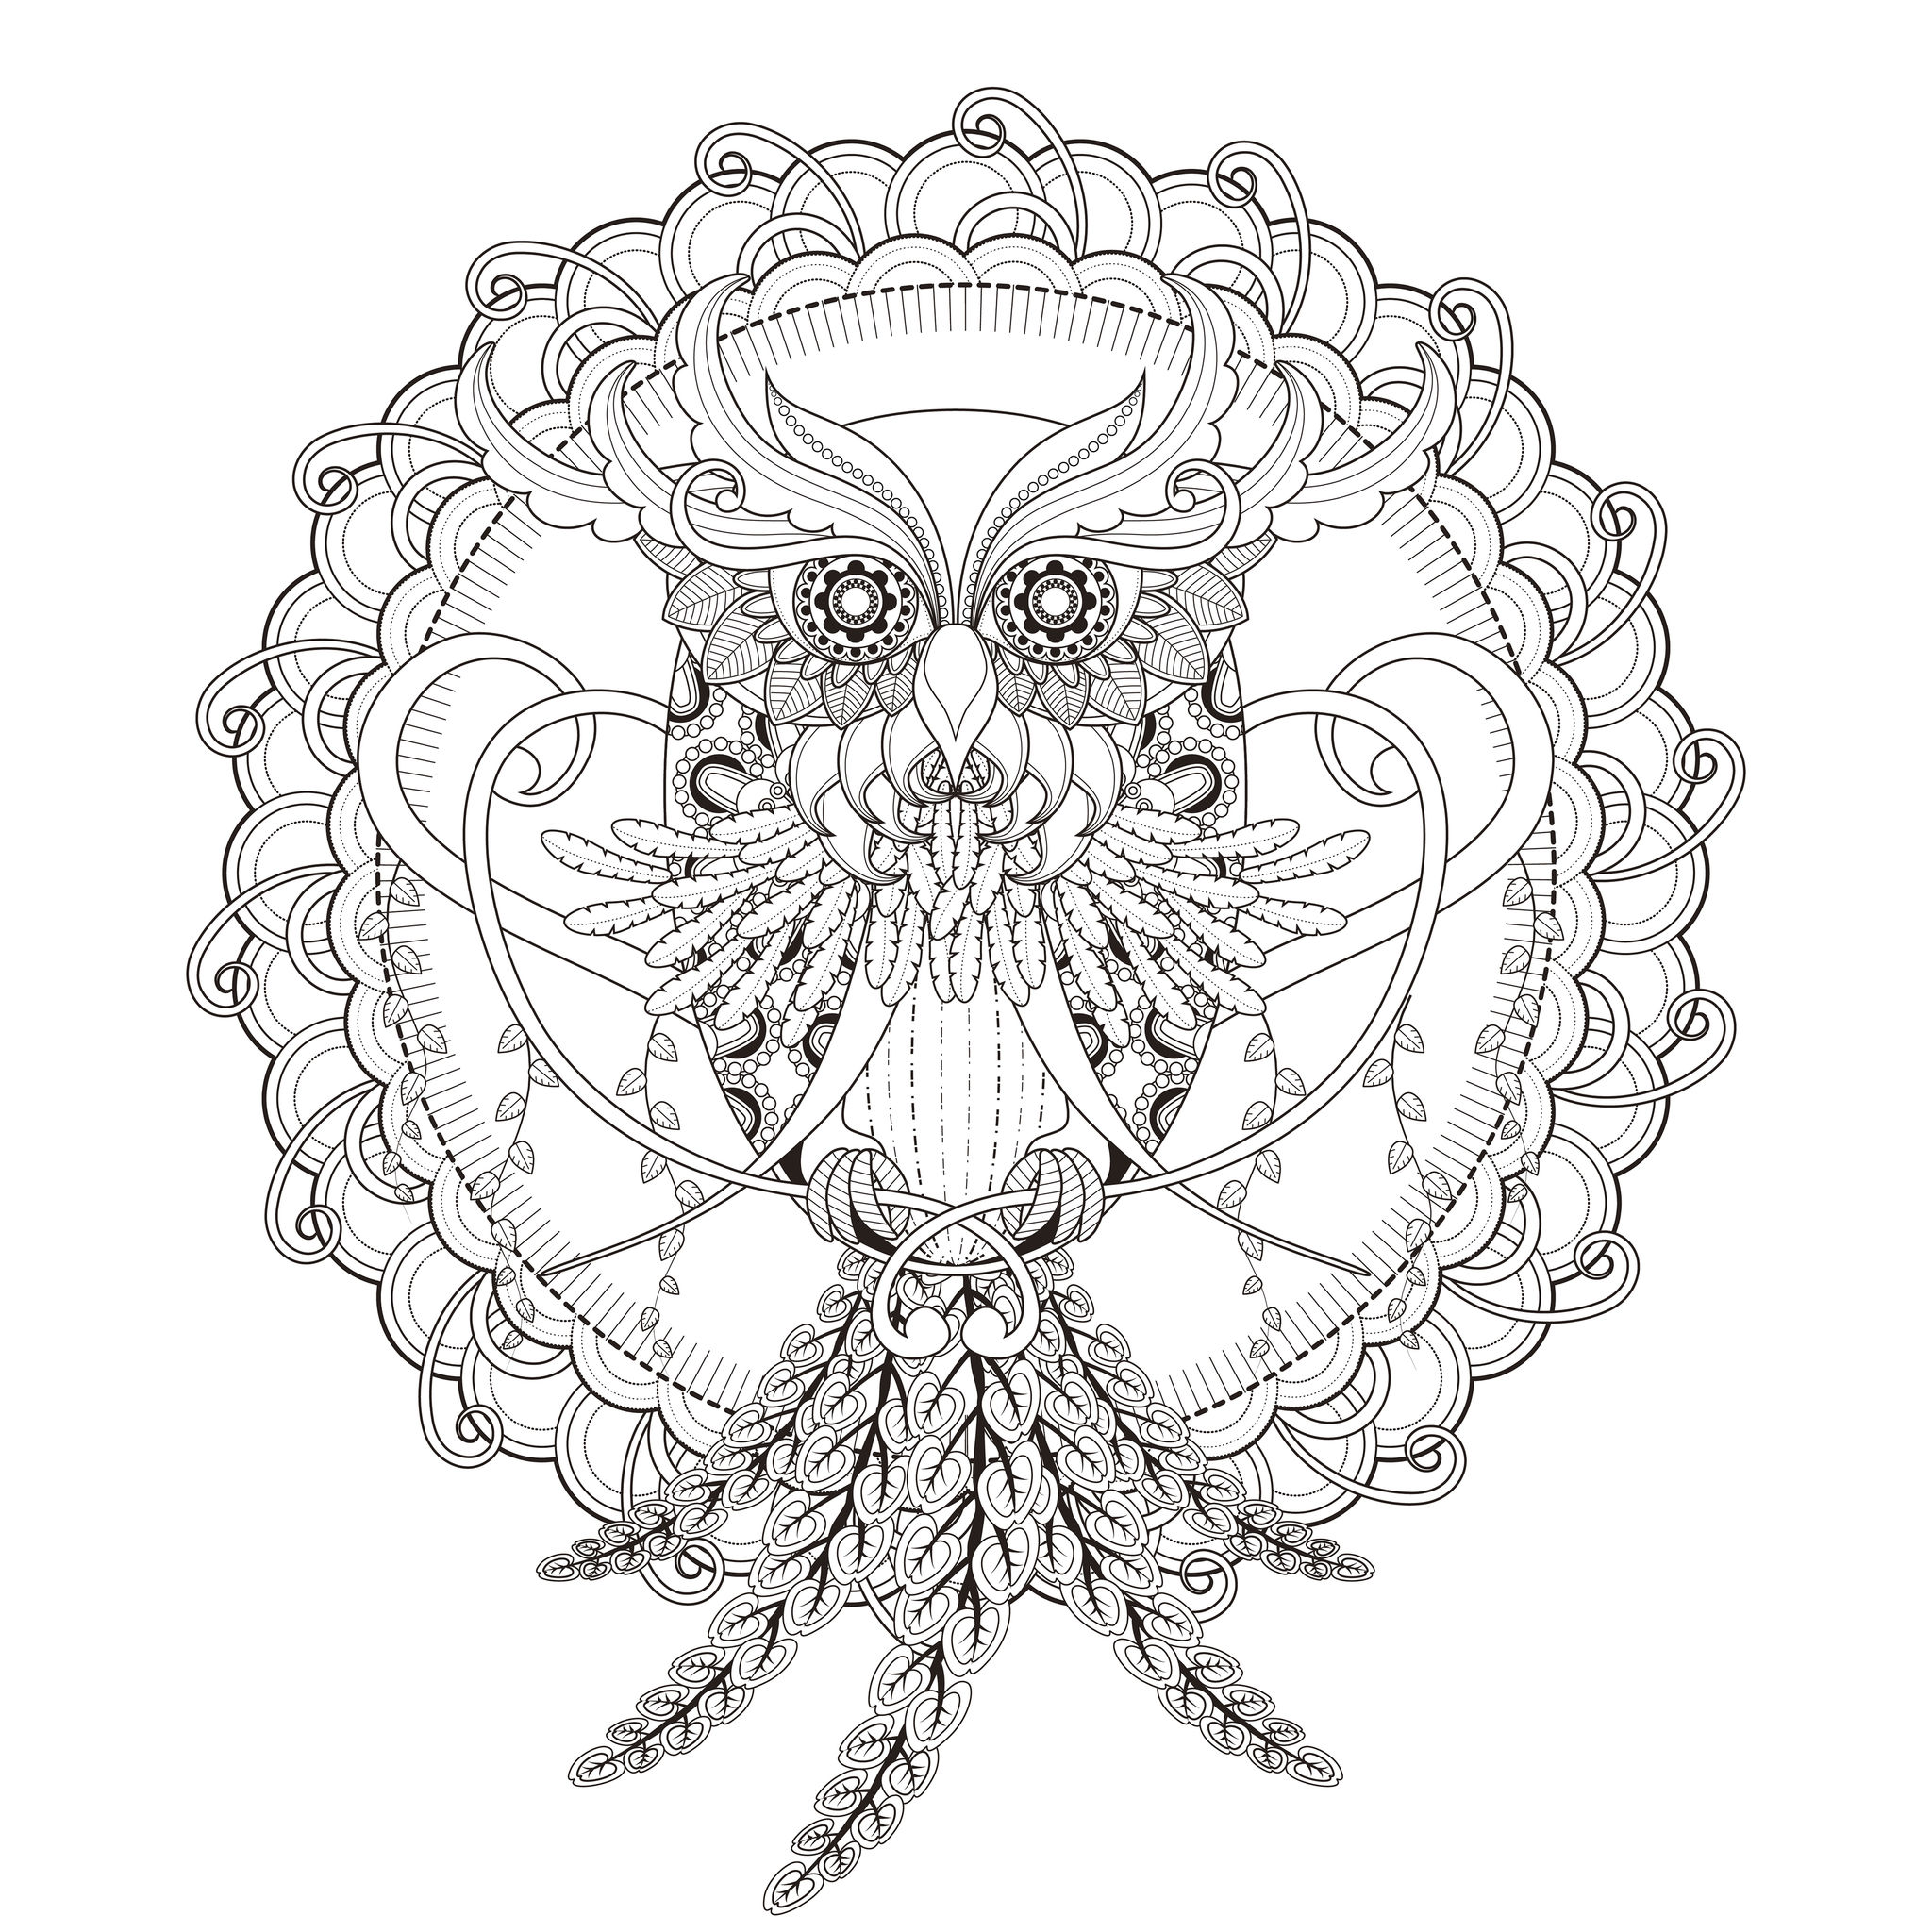 INCREDIBLE Owl Mandala coloring pageFrom the gallery : MandalasArtist : Kchung, Source :  123rf